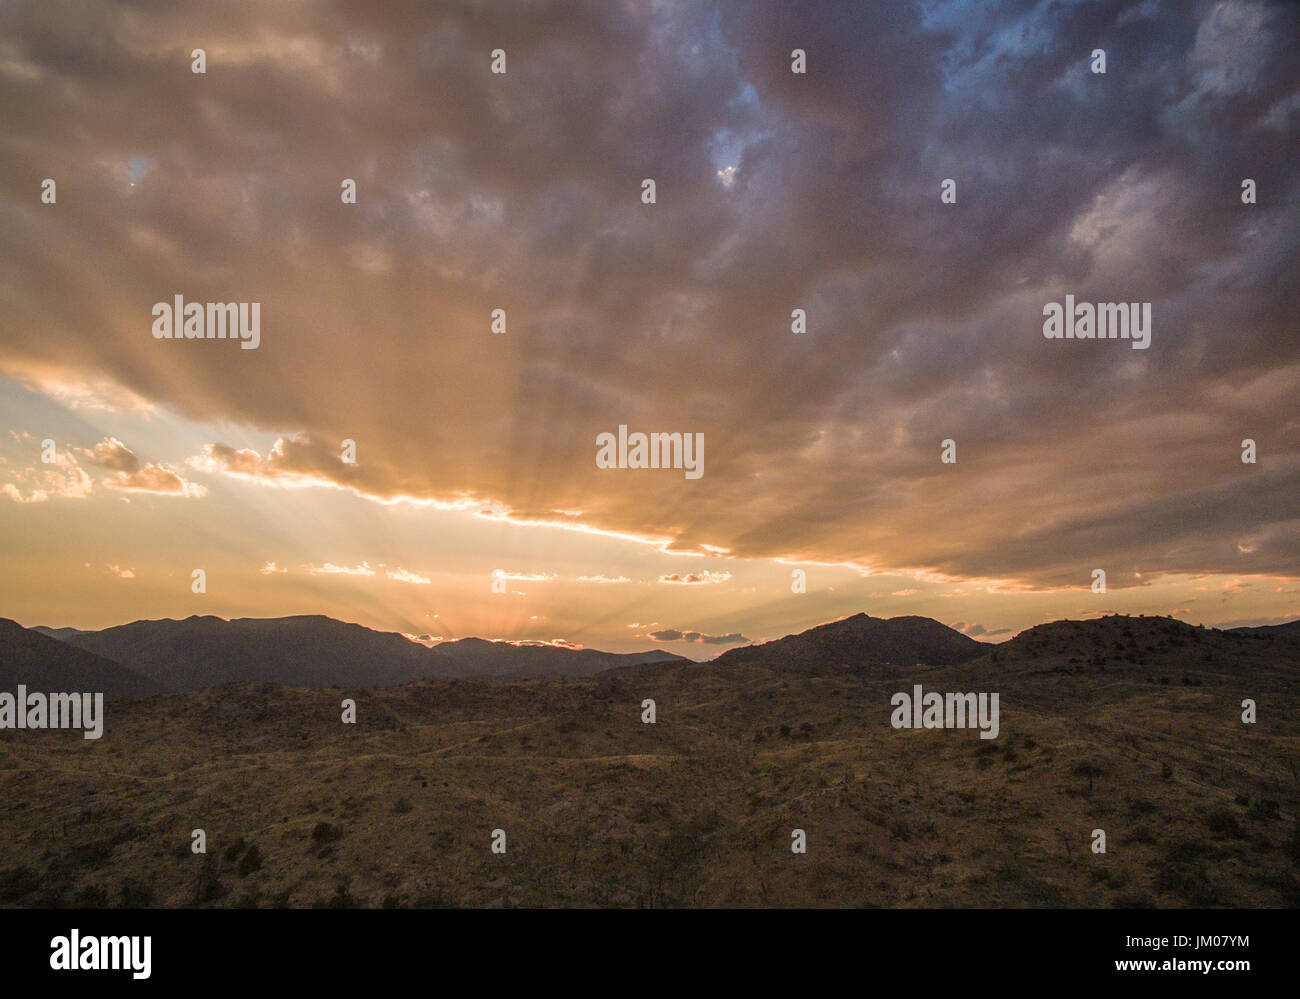 Sunset in Colorado - Stock Image